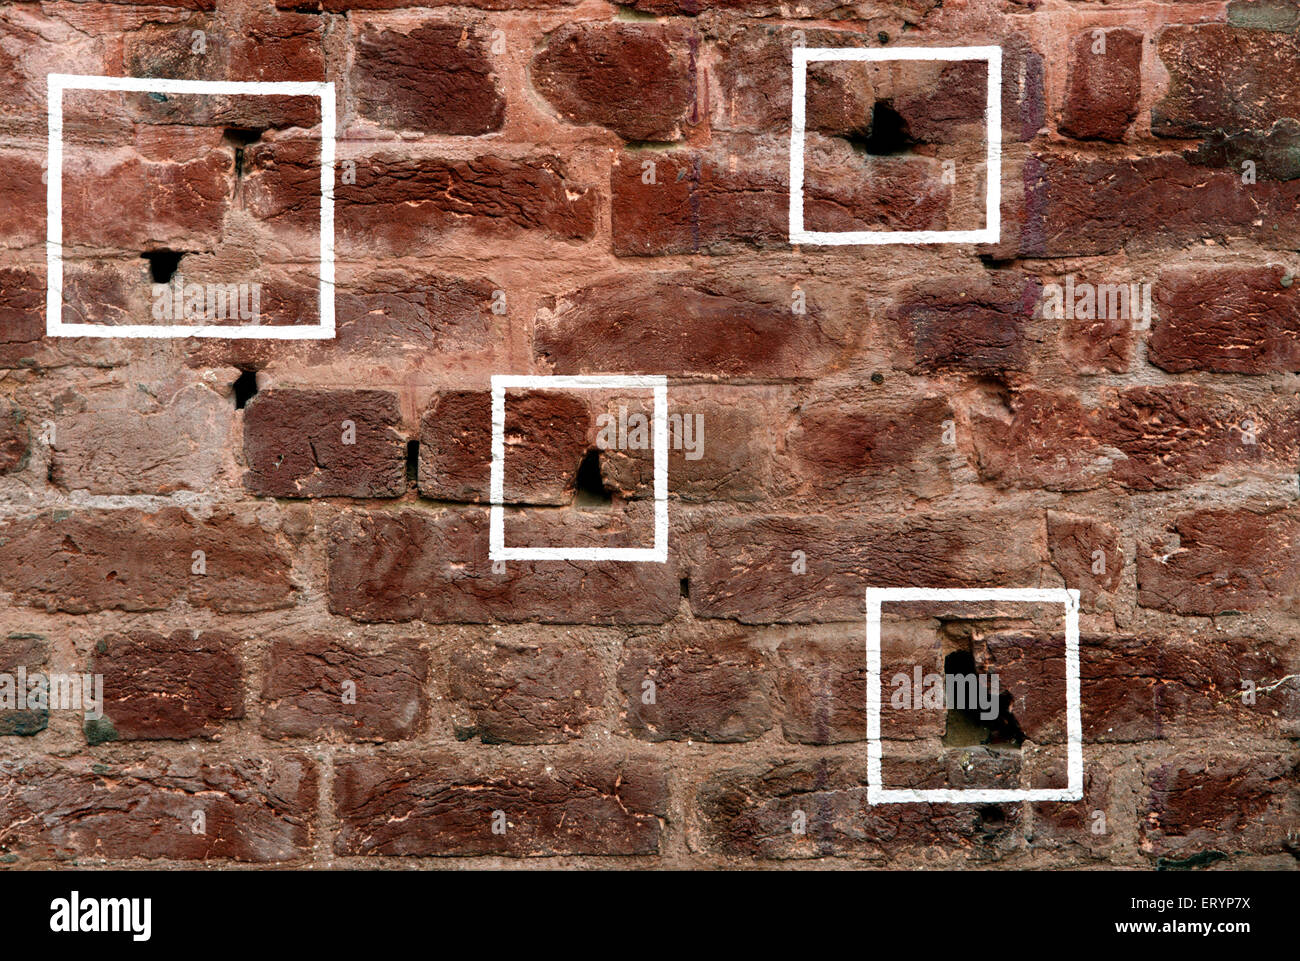 Bullet marks visible on preserved wall at Jallianwala or Jalianwala Bagh ; Amritsar ; Punjab ; India Stock Photo